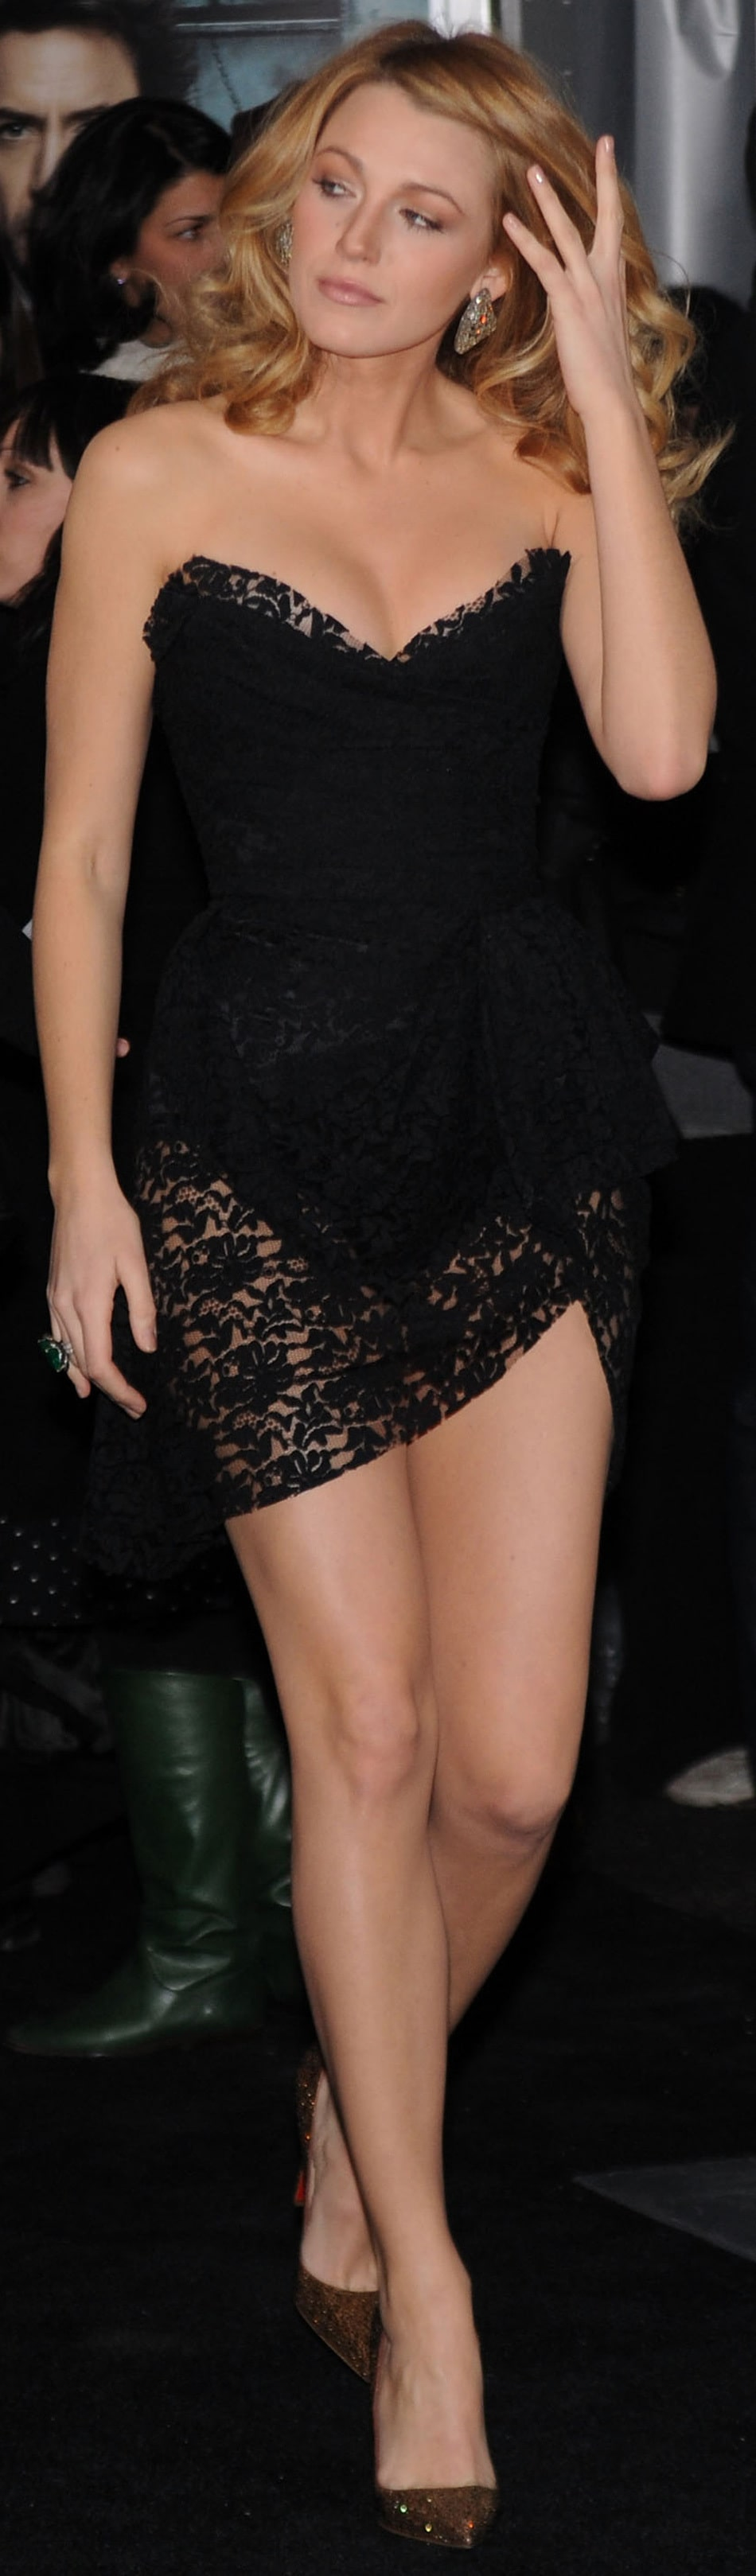 Blake Lively sexy black dress